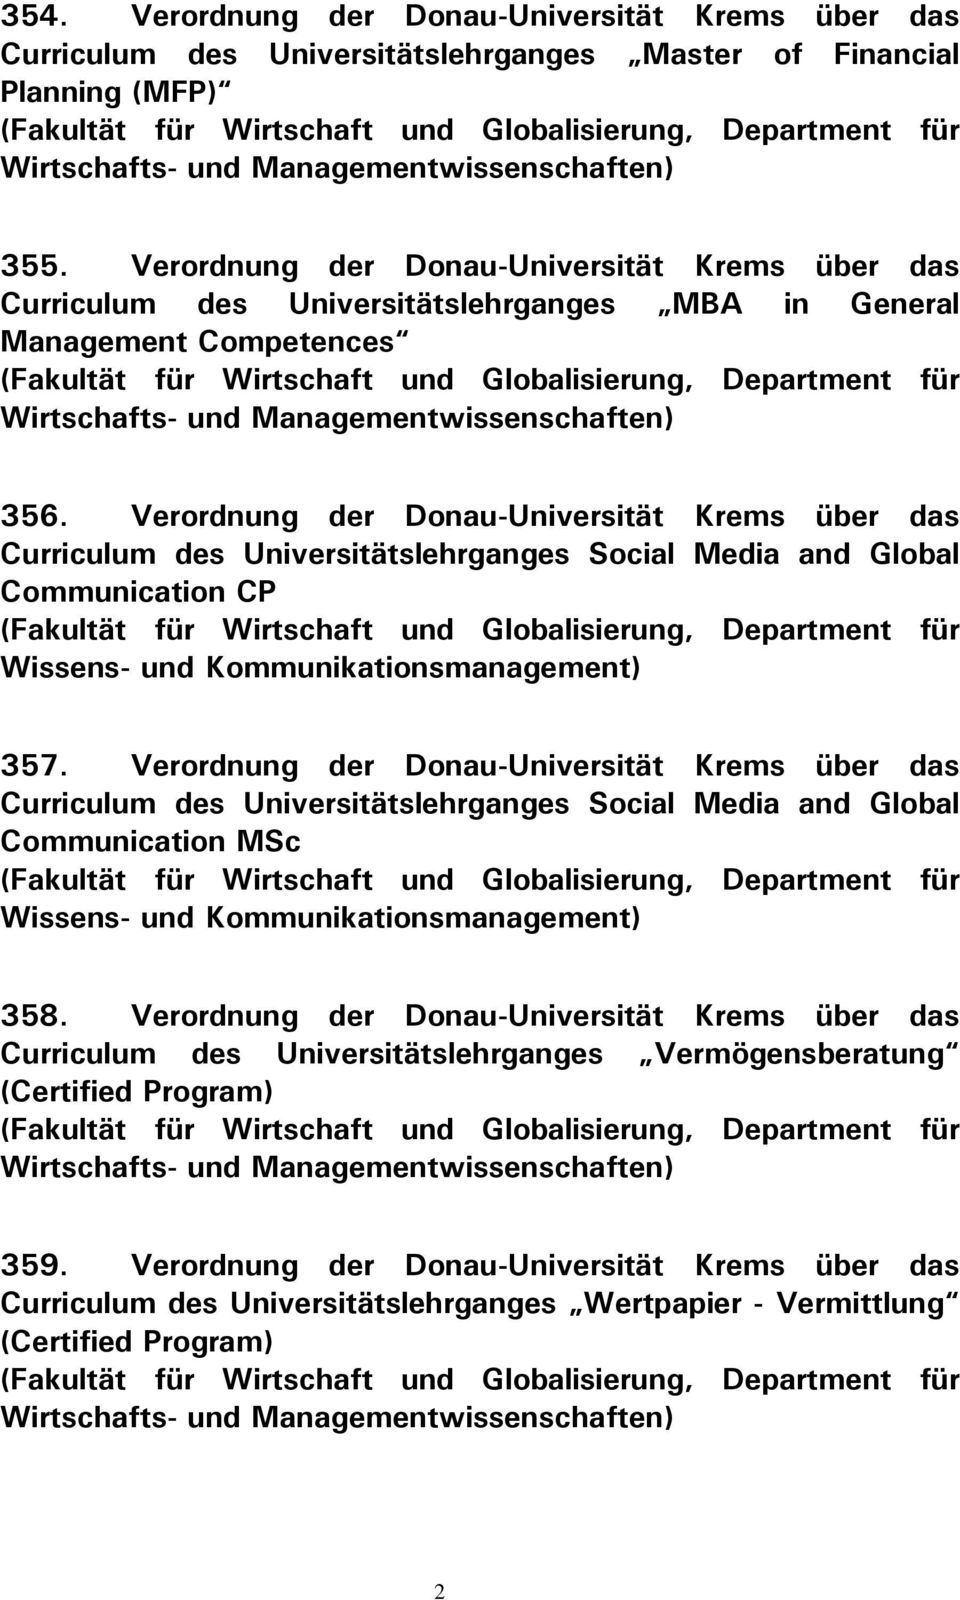 Verordnung der Donau-Universität Krems über das Curriculum des Universitätslehrganges MBA in General Management Competences (Fakultät für Wirtschaft und Globalisierung, Department für Wirtschafts-